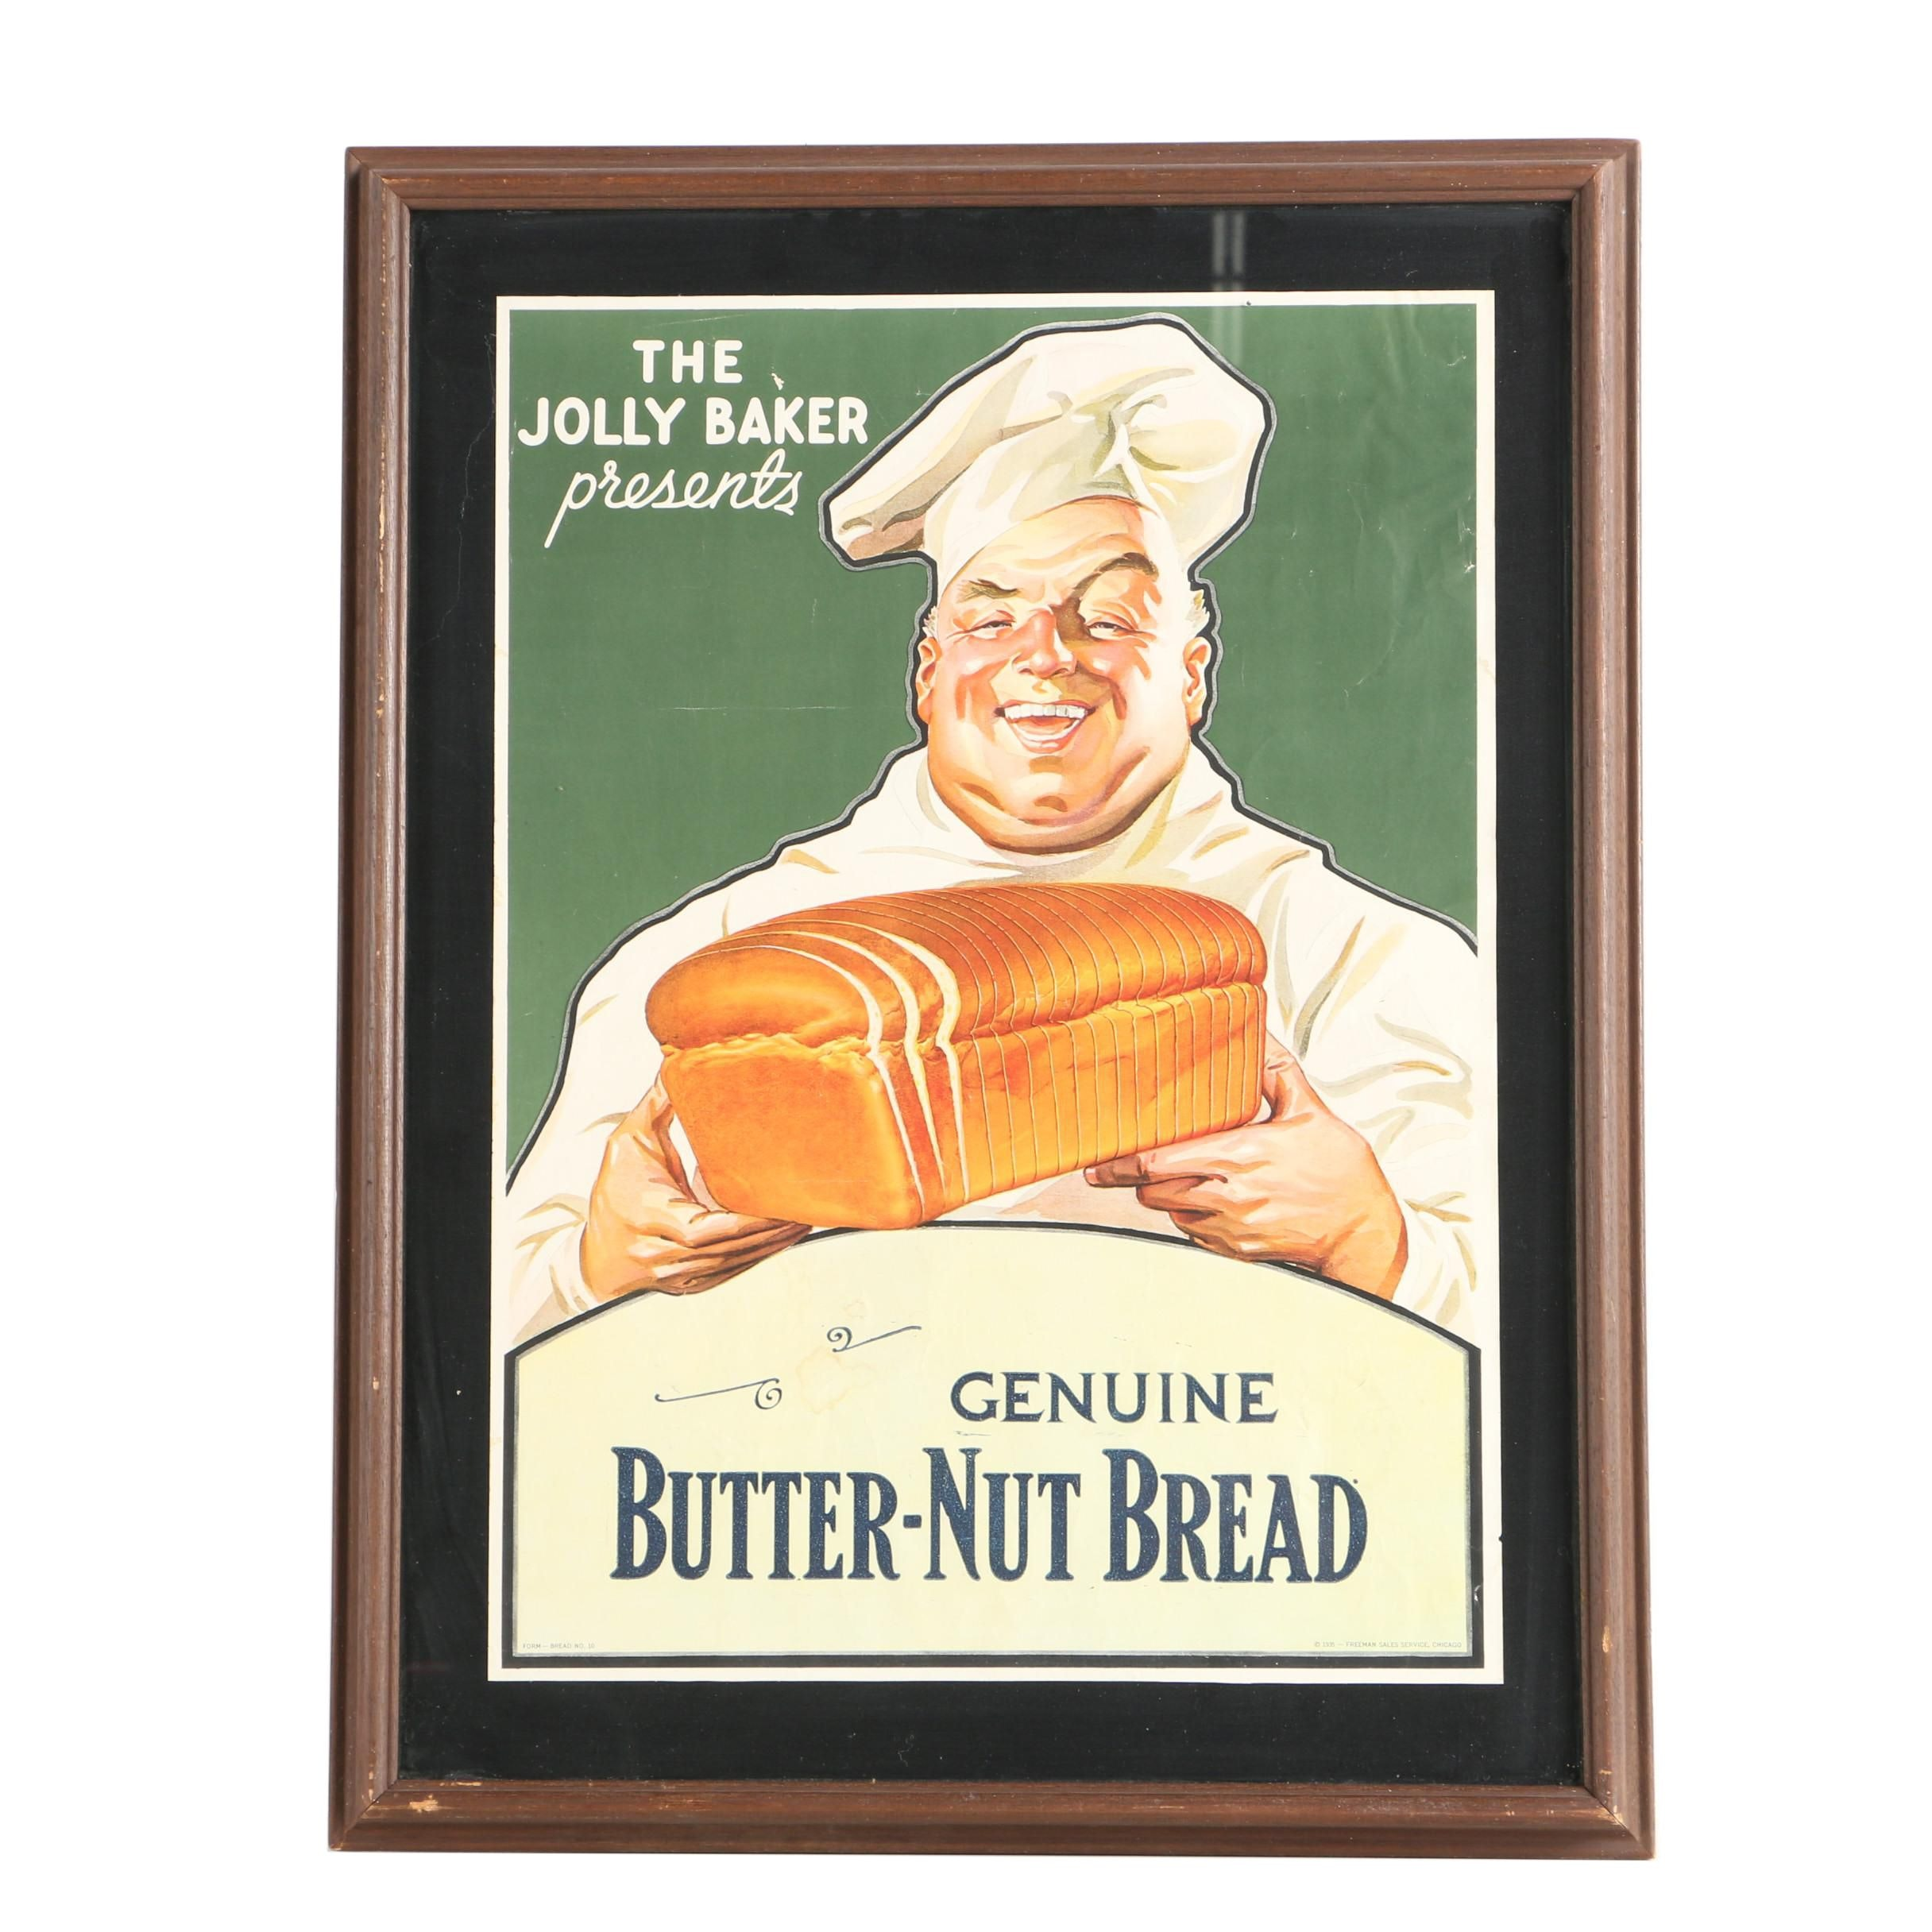 1935 Offset Lithograph on Paper Advertisement for Butter-Nut Bread